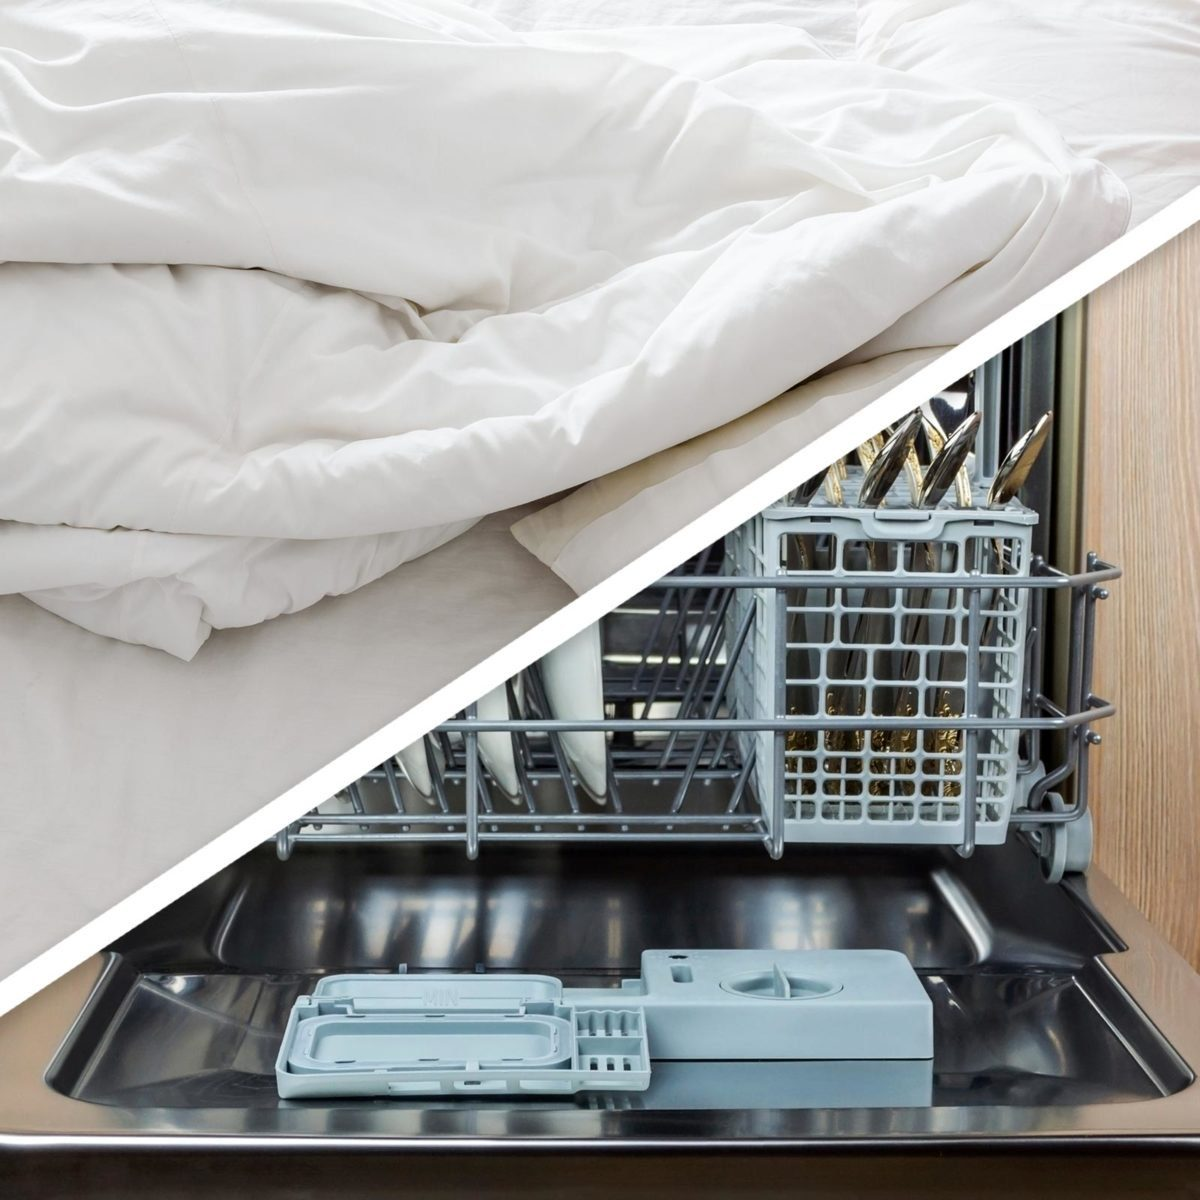 Bed sheets and dishwasher